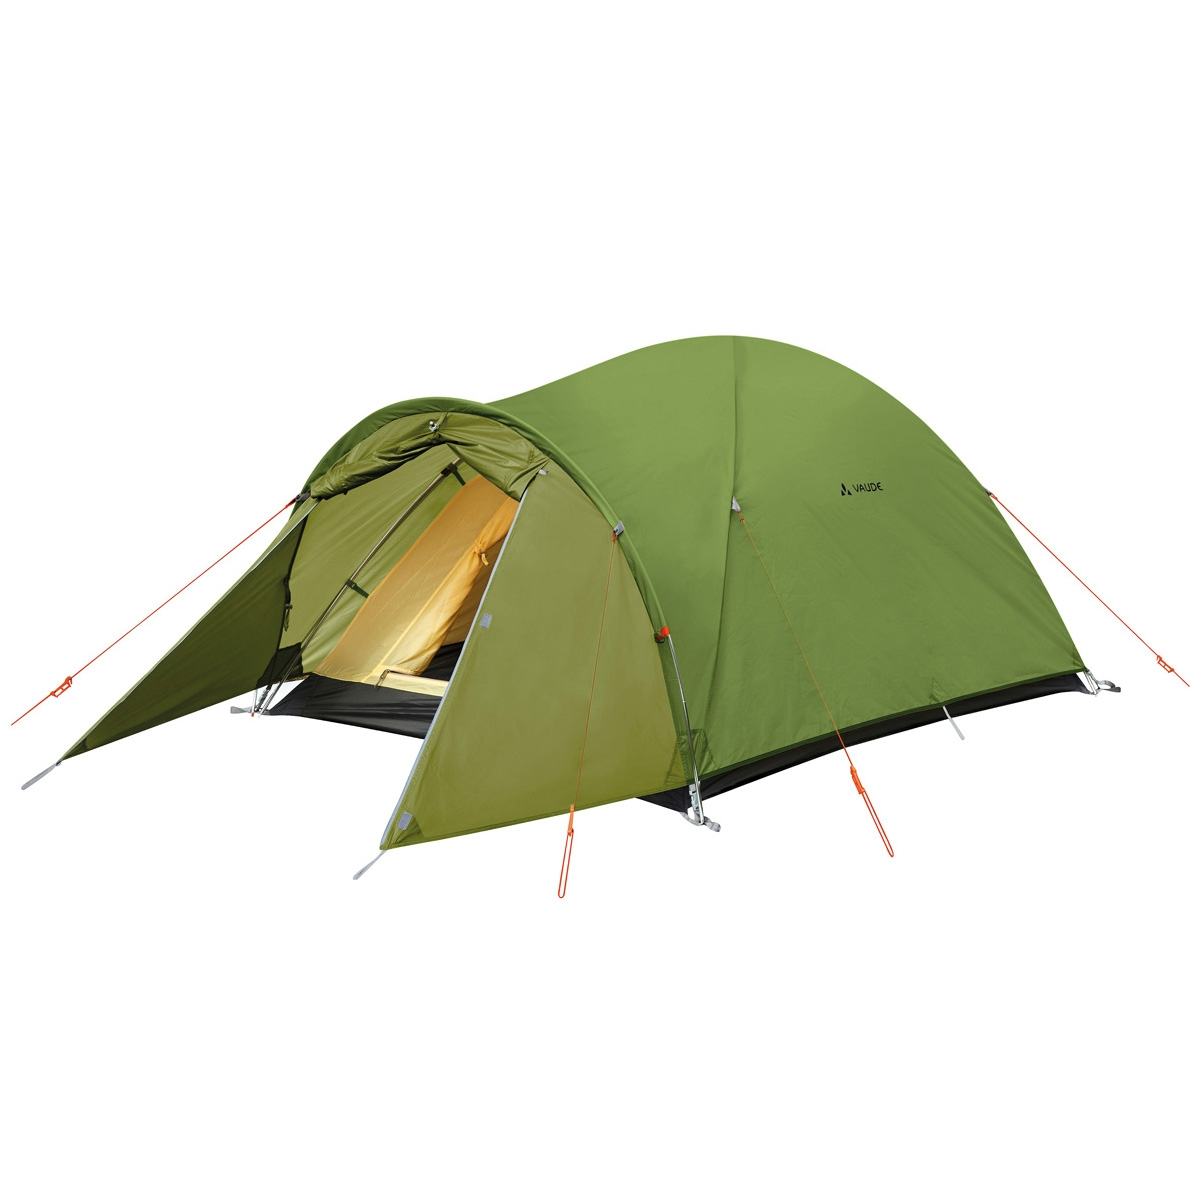 Vaude C&o Compact XT 2P Tent  sc 1 st  Uttings & Vaude 1-2 Person Tents | Uttings.co.uk